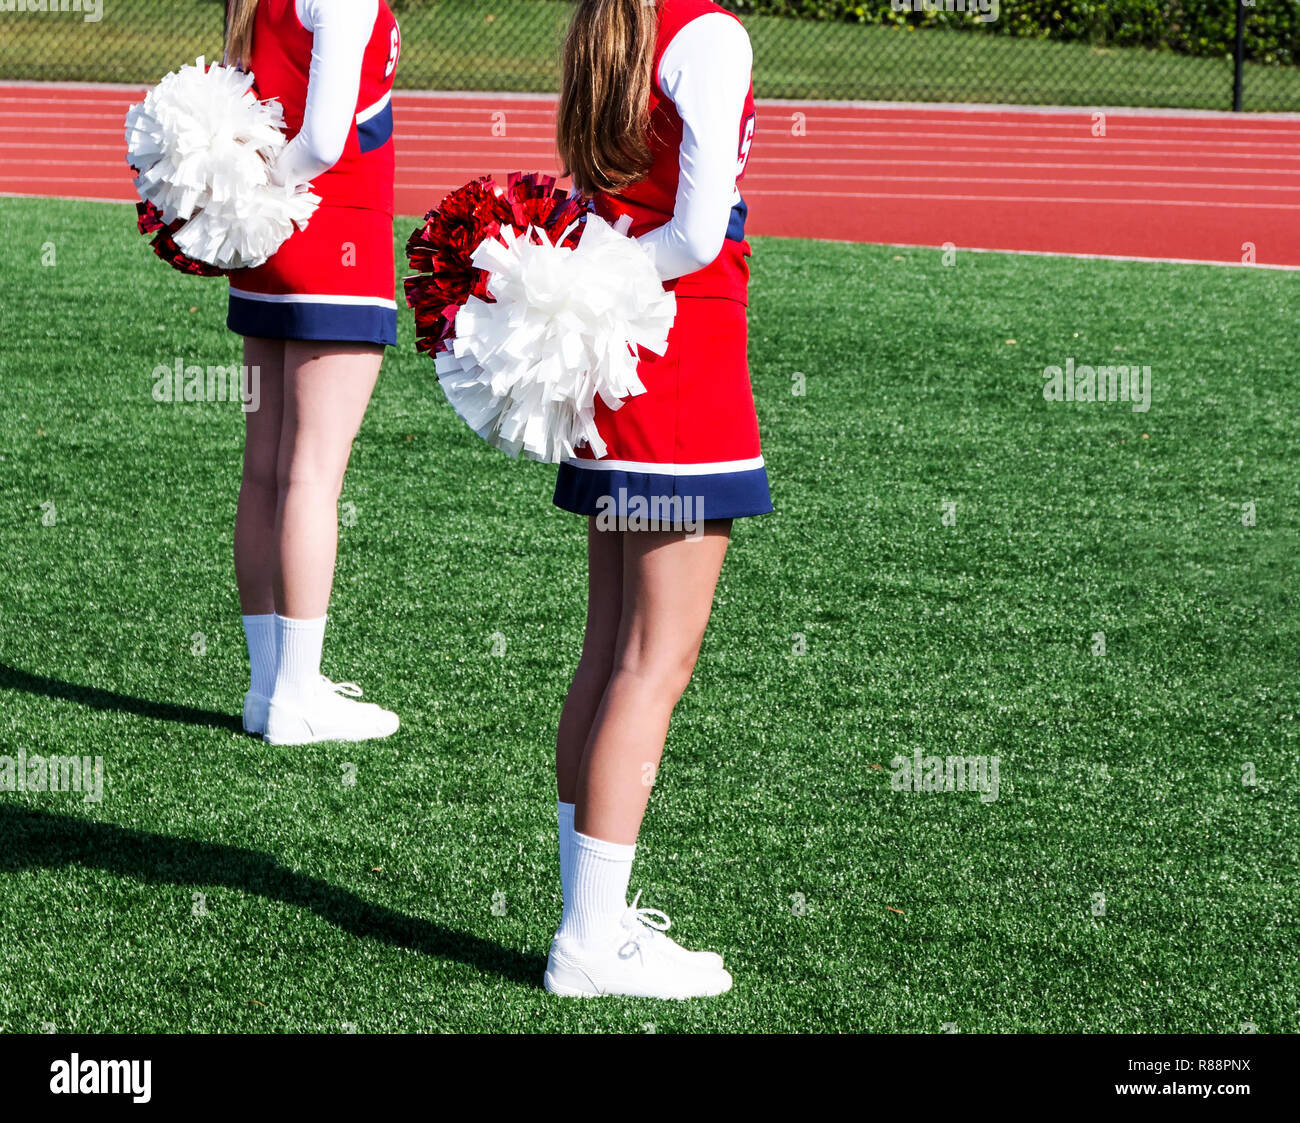 Two high school cheerleaders are standing at attention with their pompoms behind them getting ready to start their routine. - Stock Image